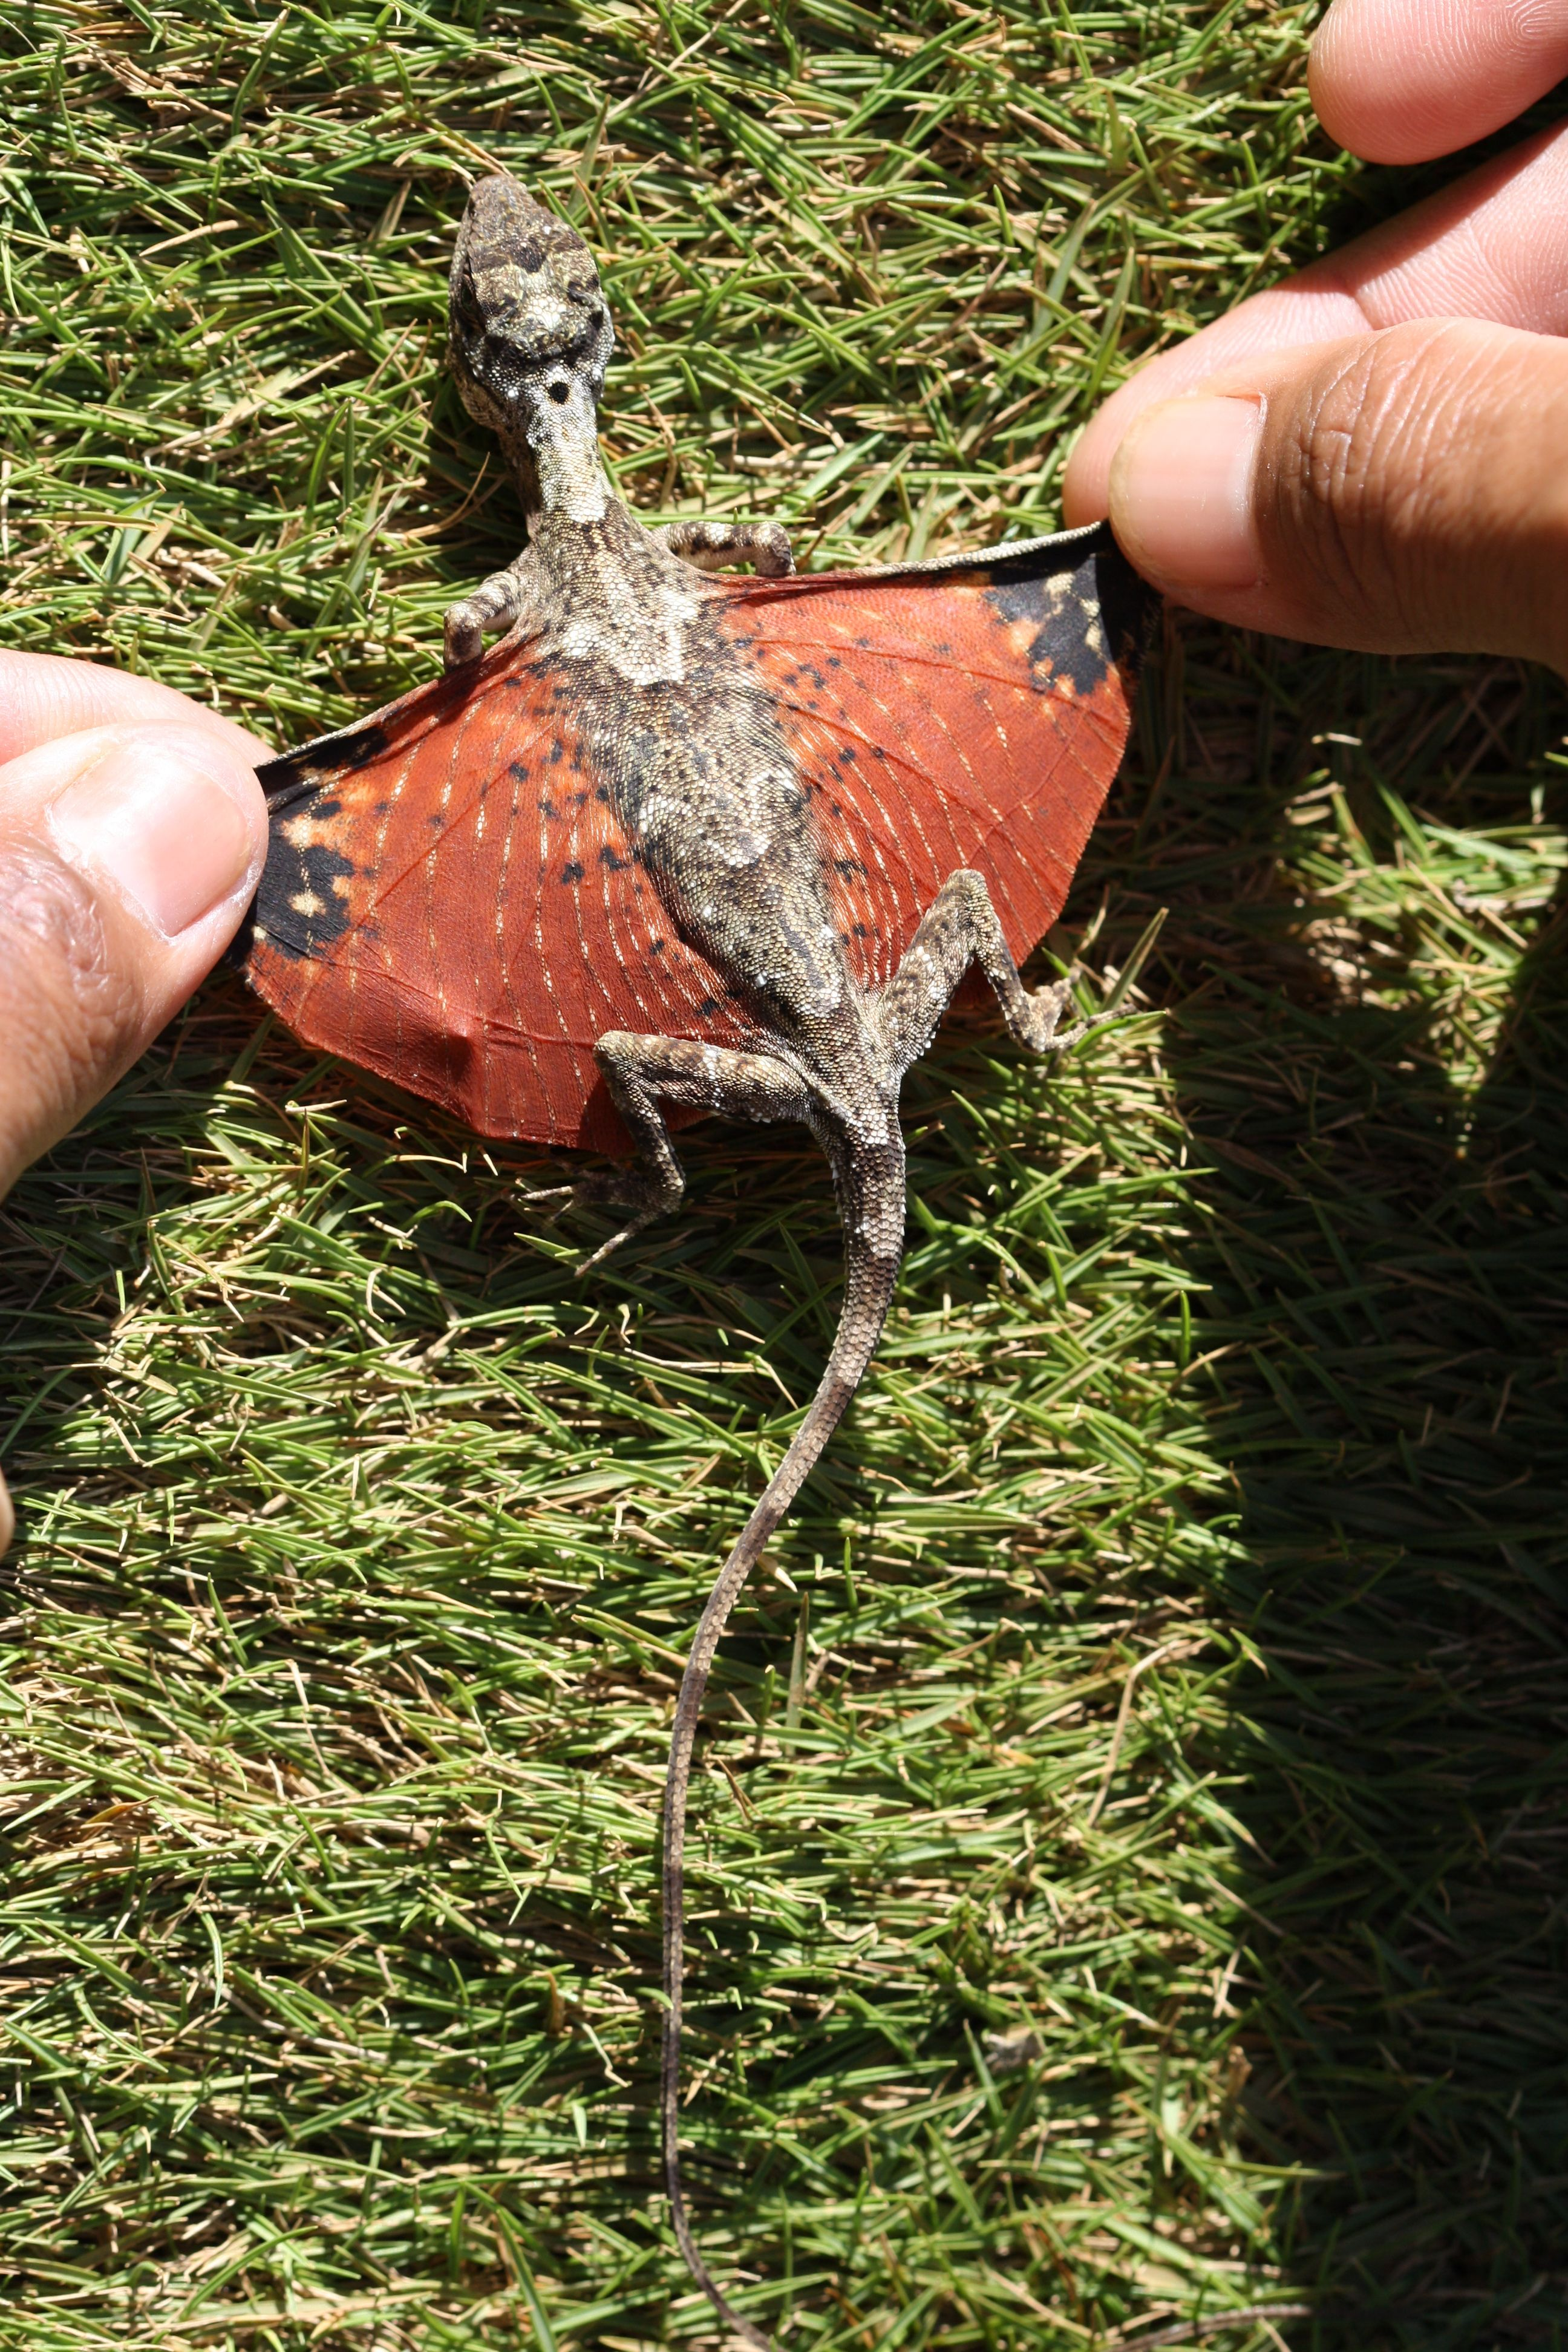 Draco Volans Or The Flying Dragon Is A Member Of The Genus Of - Majestic dragon lizard caught playing leaf guitar indonesia